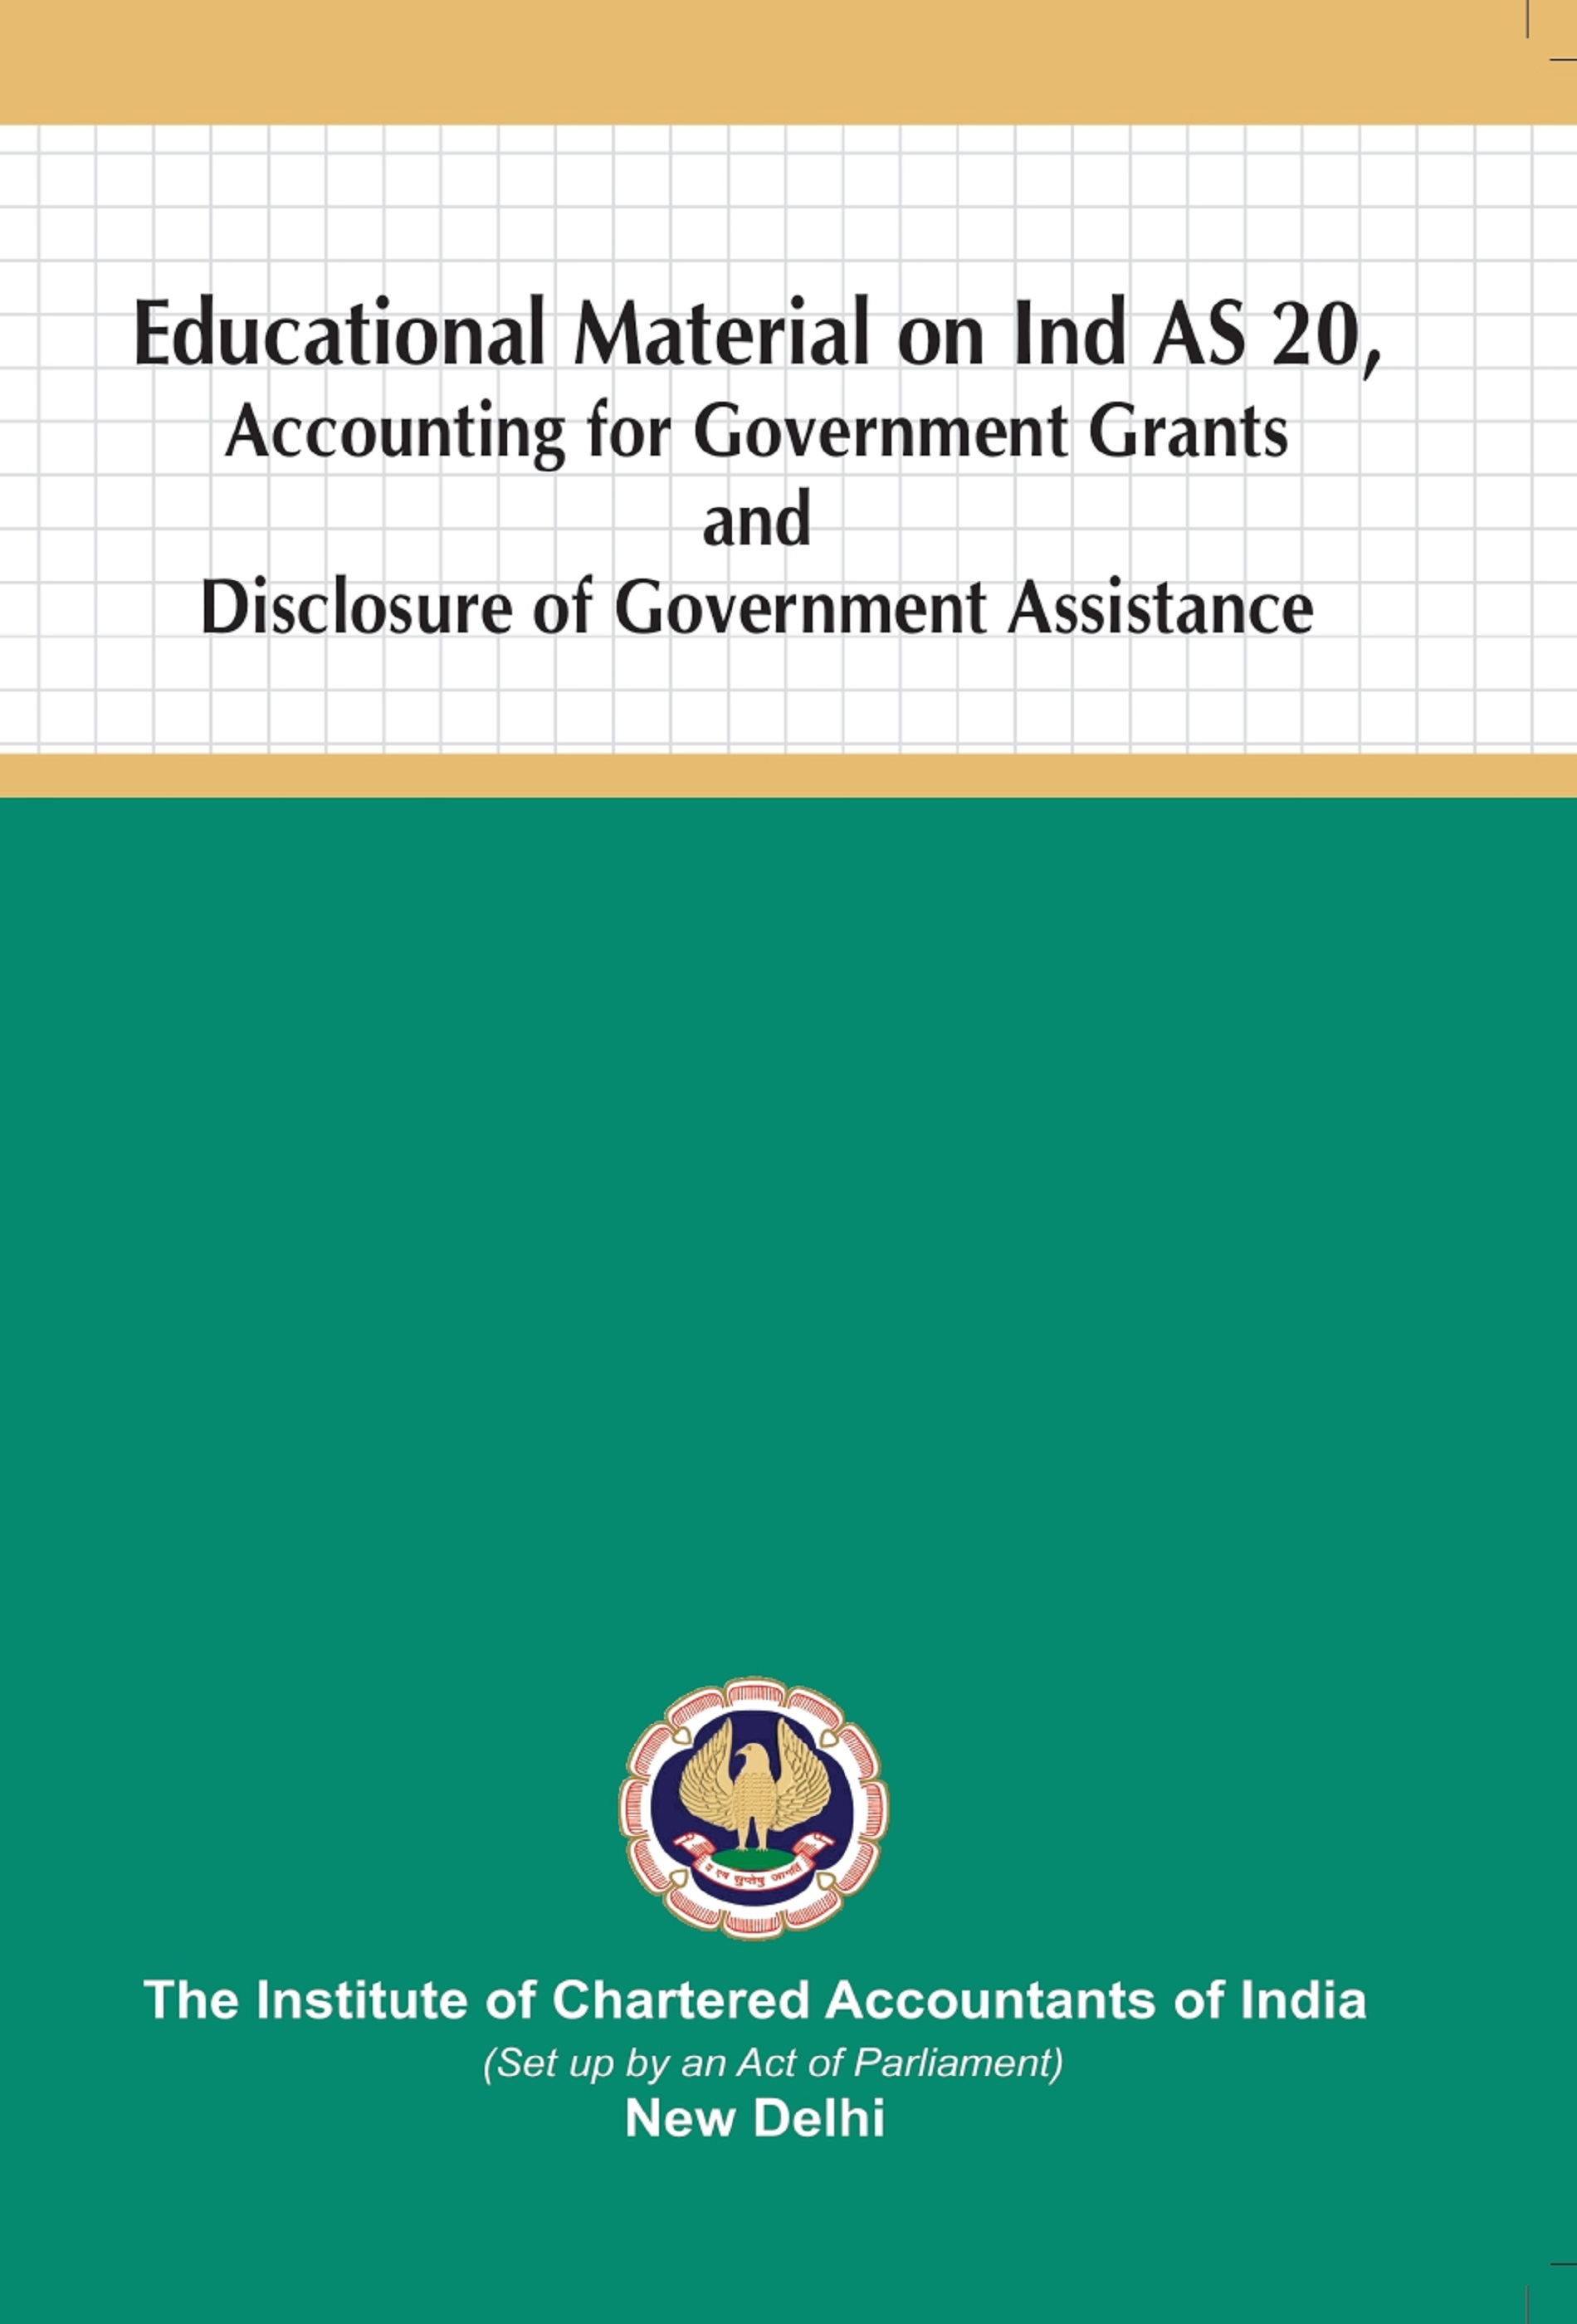 Educational Material on Ind AS 20, Accounting for Government Grants and Disclosure of Government Assistance (February, 2020)